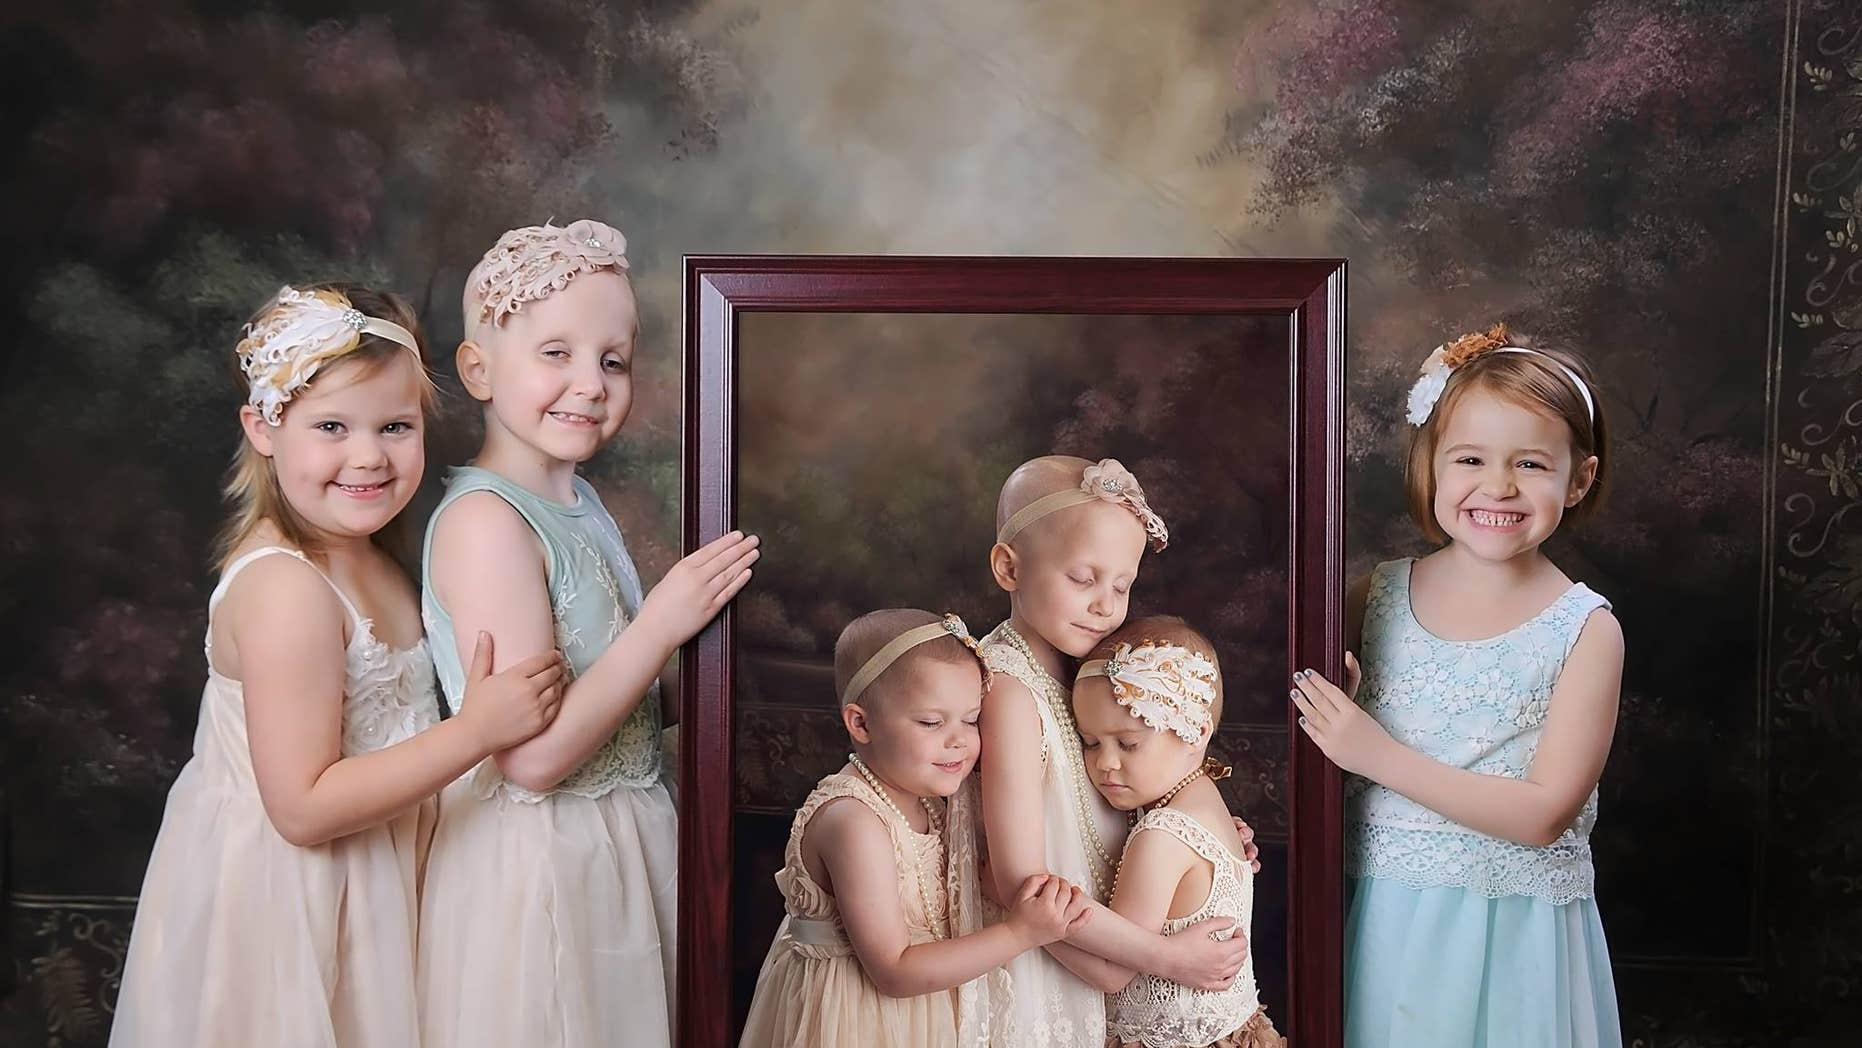 Rheanna, Ainsley and Rylie pose with the original photo of them taken two years ago.